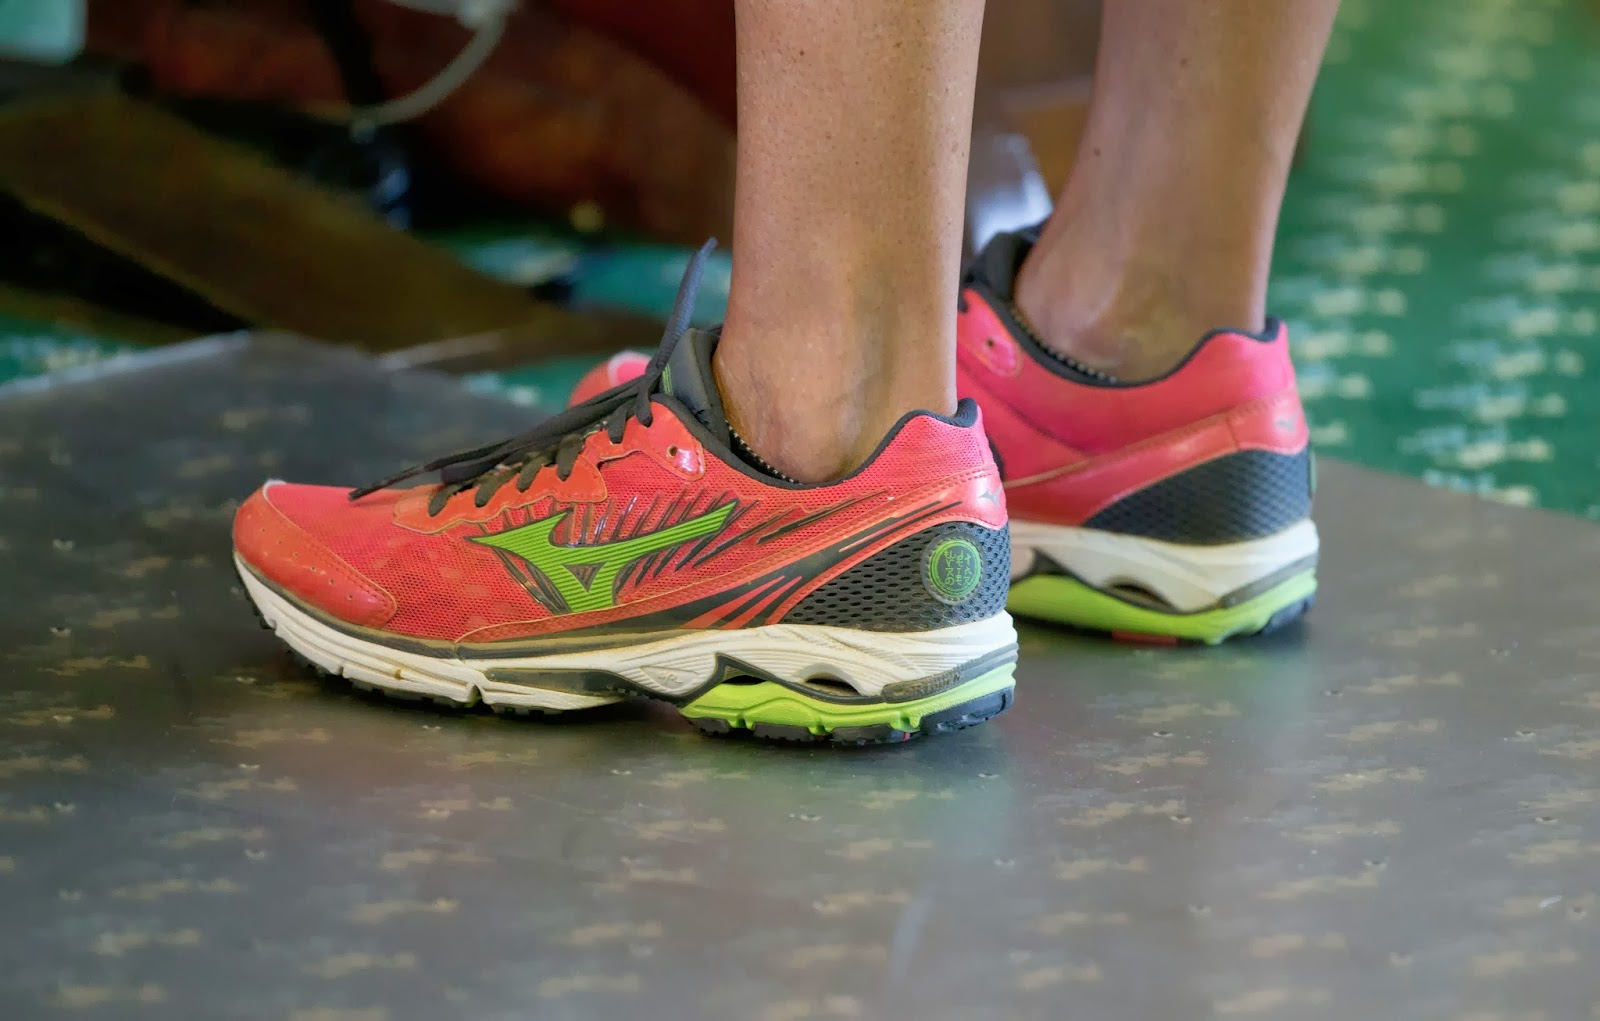 Wendy Davis Pink Tennis Shoes